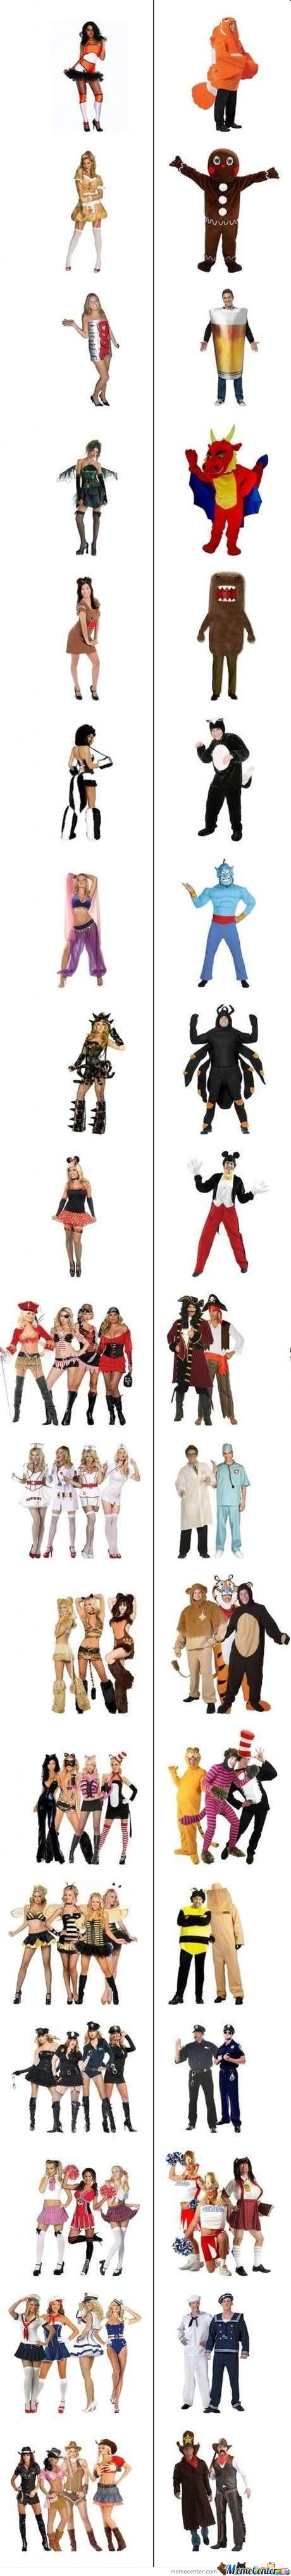 Halloween Costumes: Men Vs Women